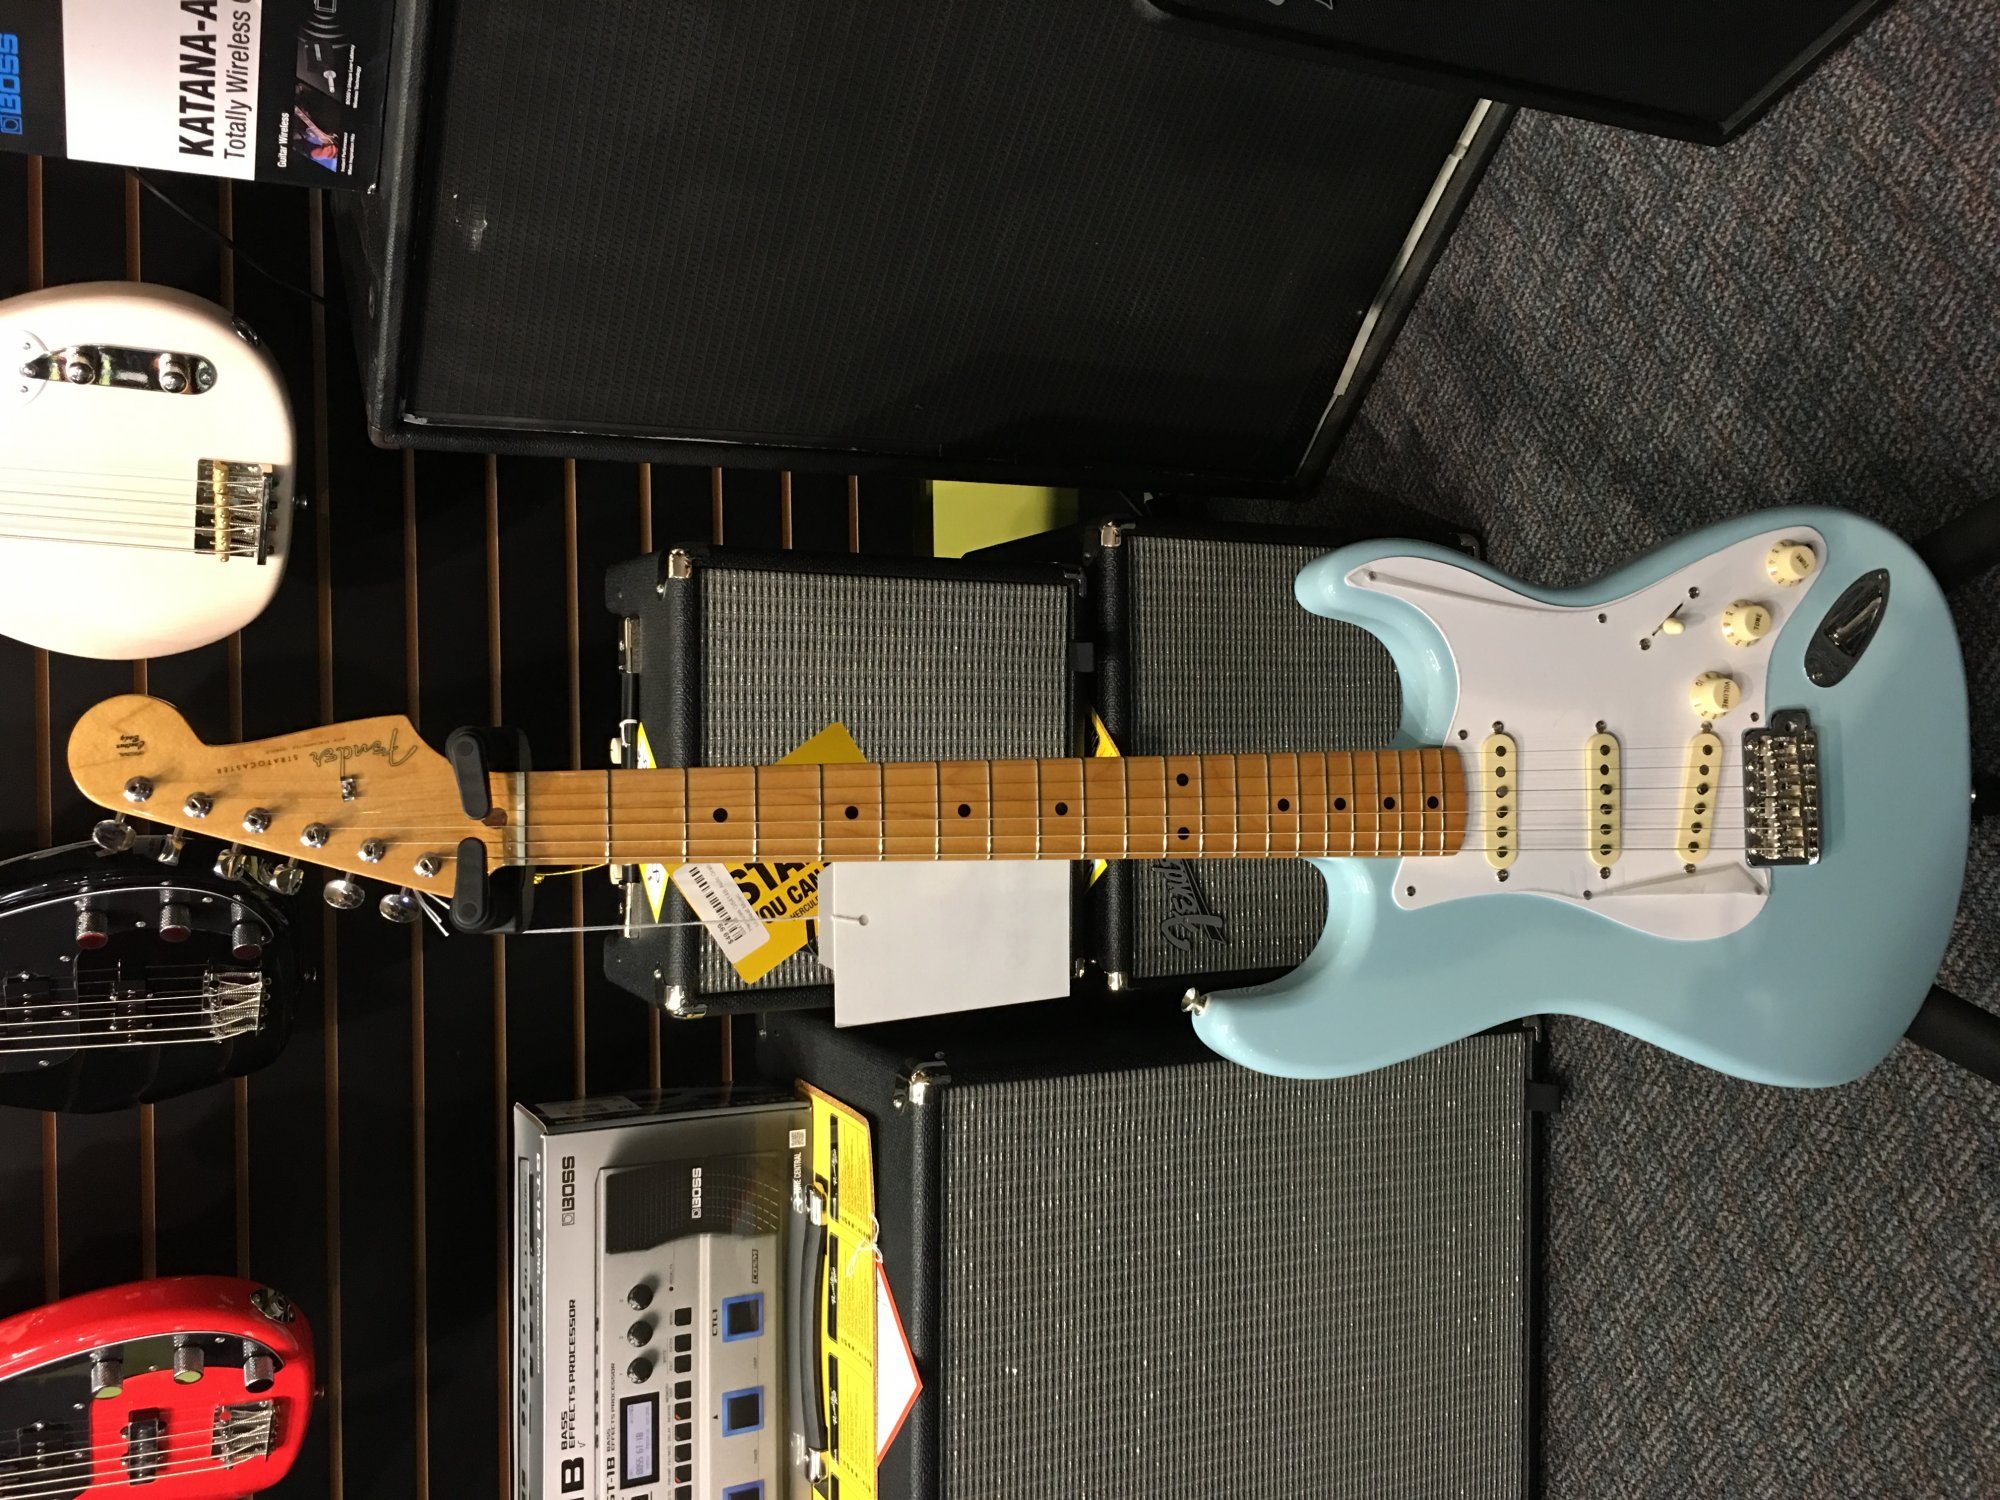 Fender Classic Series 50s Stratocaster Daphne Blue Maple Fingerboard